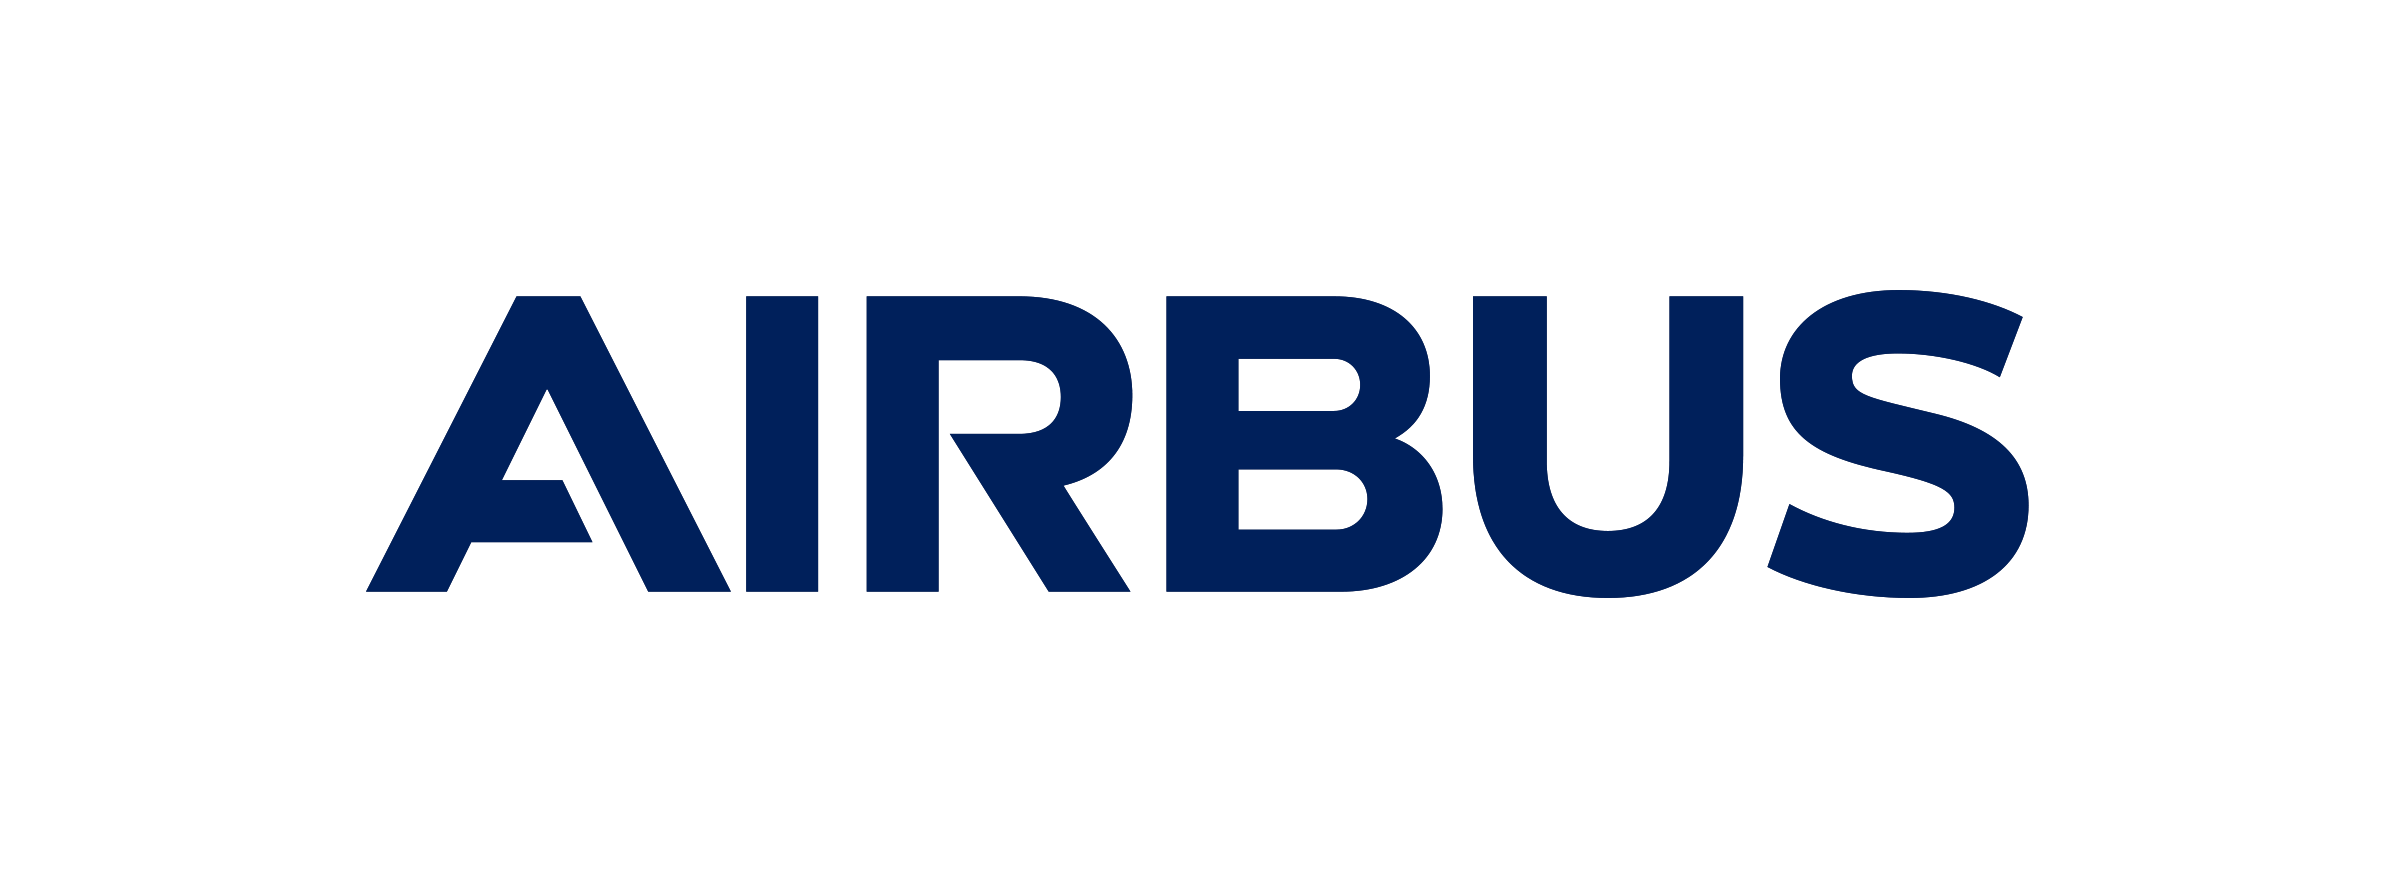 Illustrationen - Airbus Logo Vector PNG